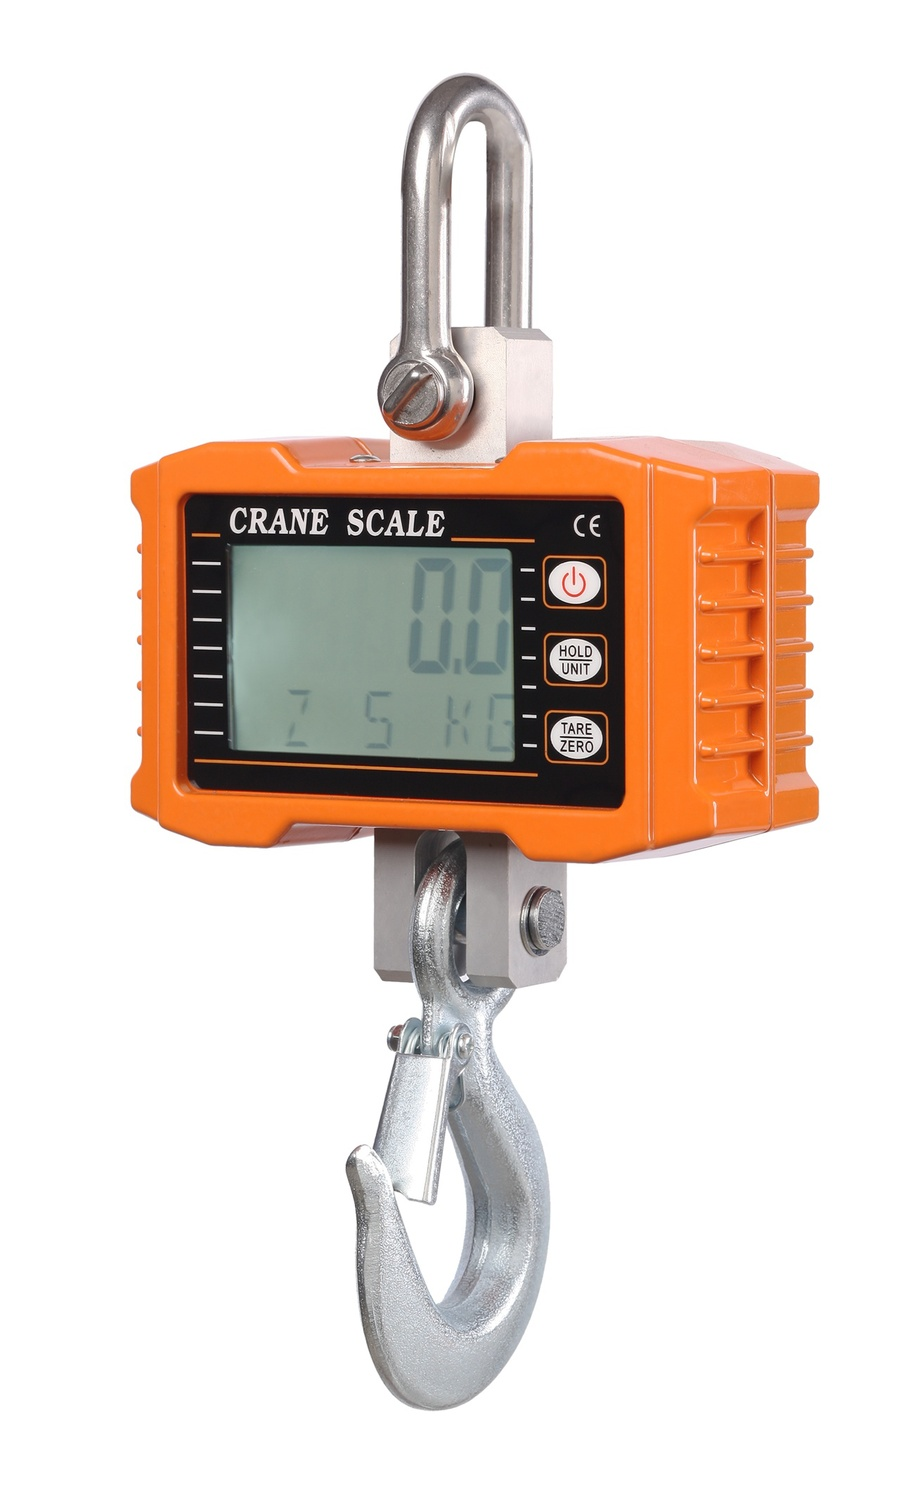 Smart high accuracy electronic crane scale ocs s200 in for Are smart scales worth it